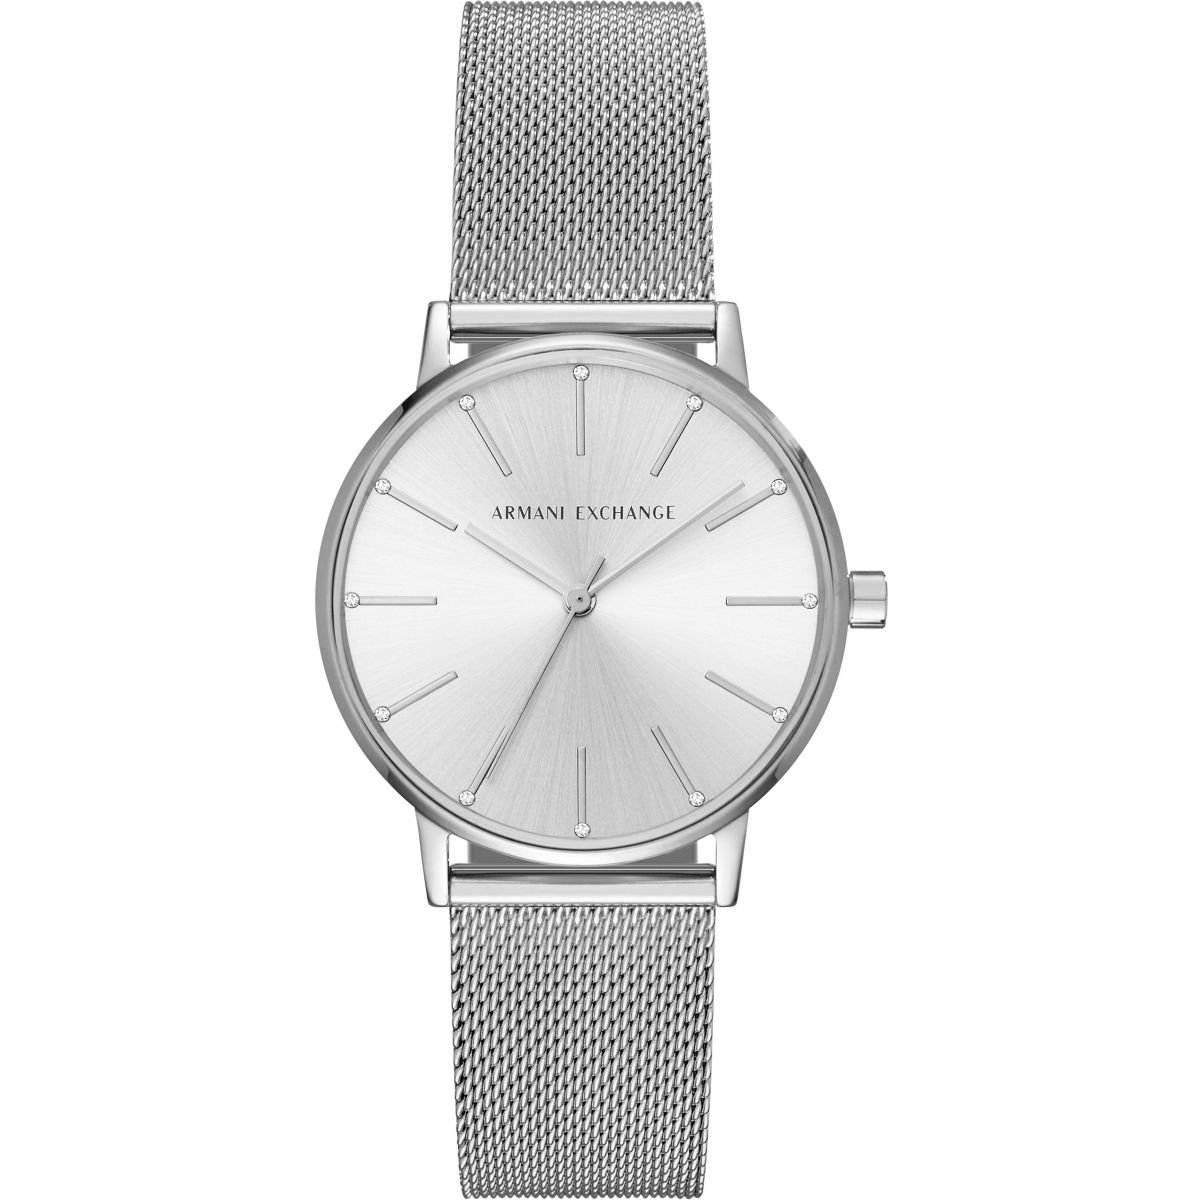 Hodinky ARMANI EXCHANGE Stainless Steel Mesh Bracelet Watch